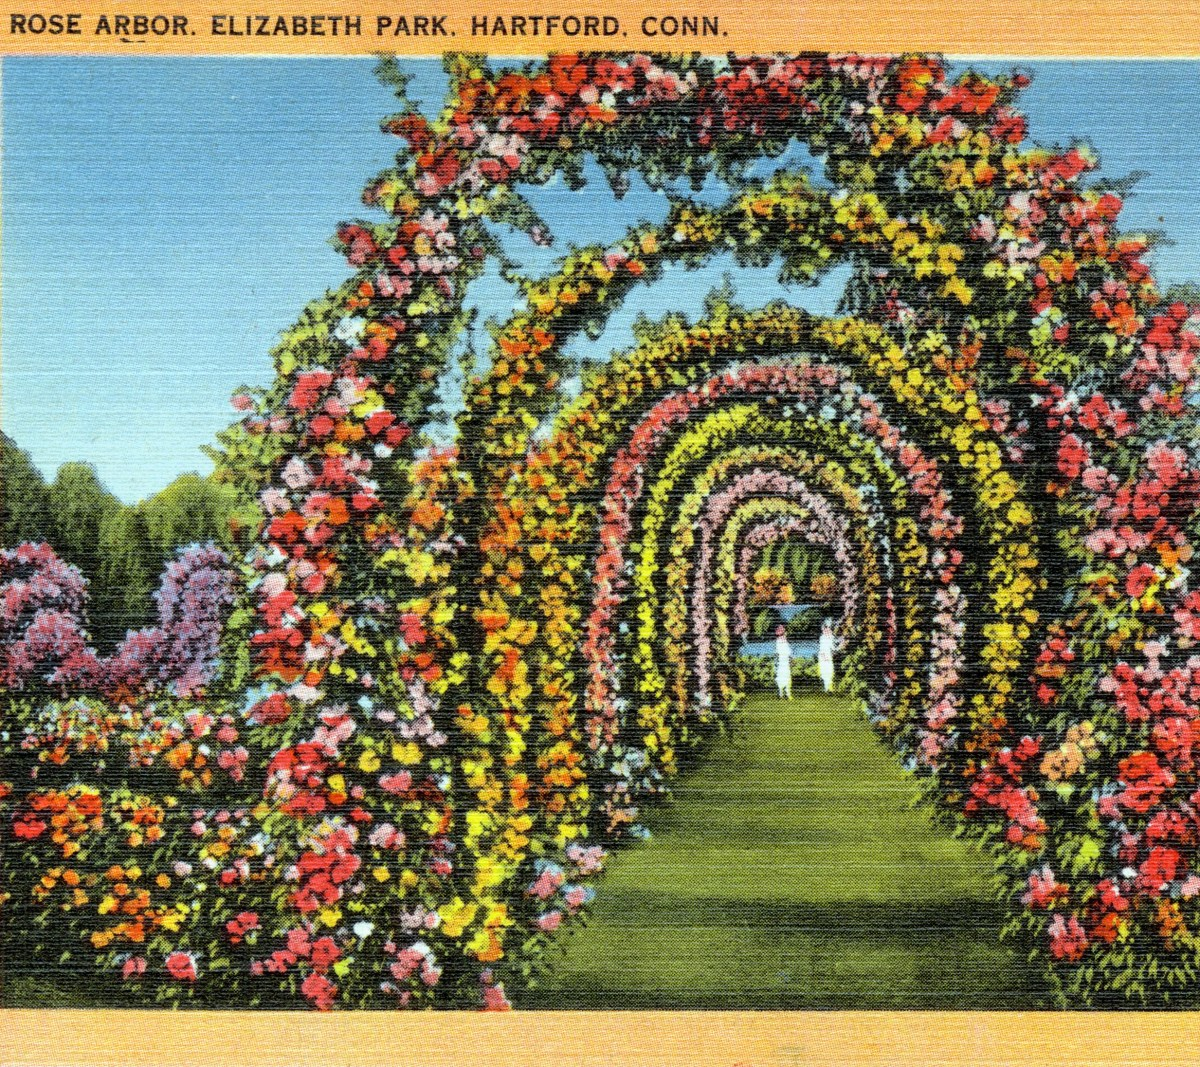 Roses In Garden: June 18: The Nation's Oldest Municipal Rose Garden In